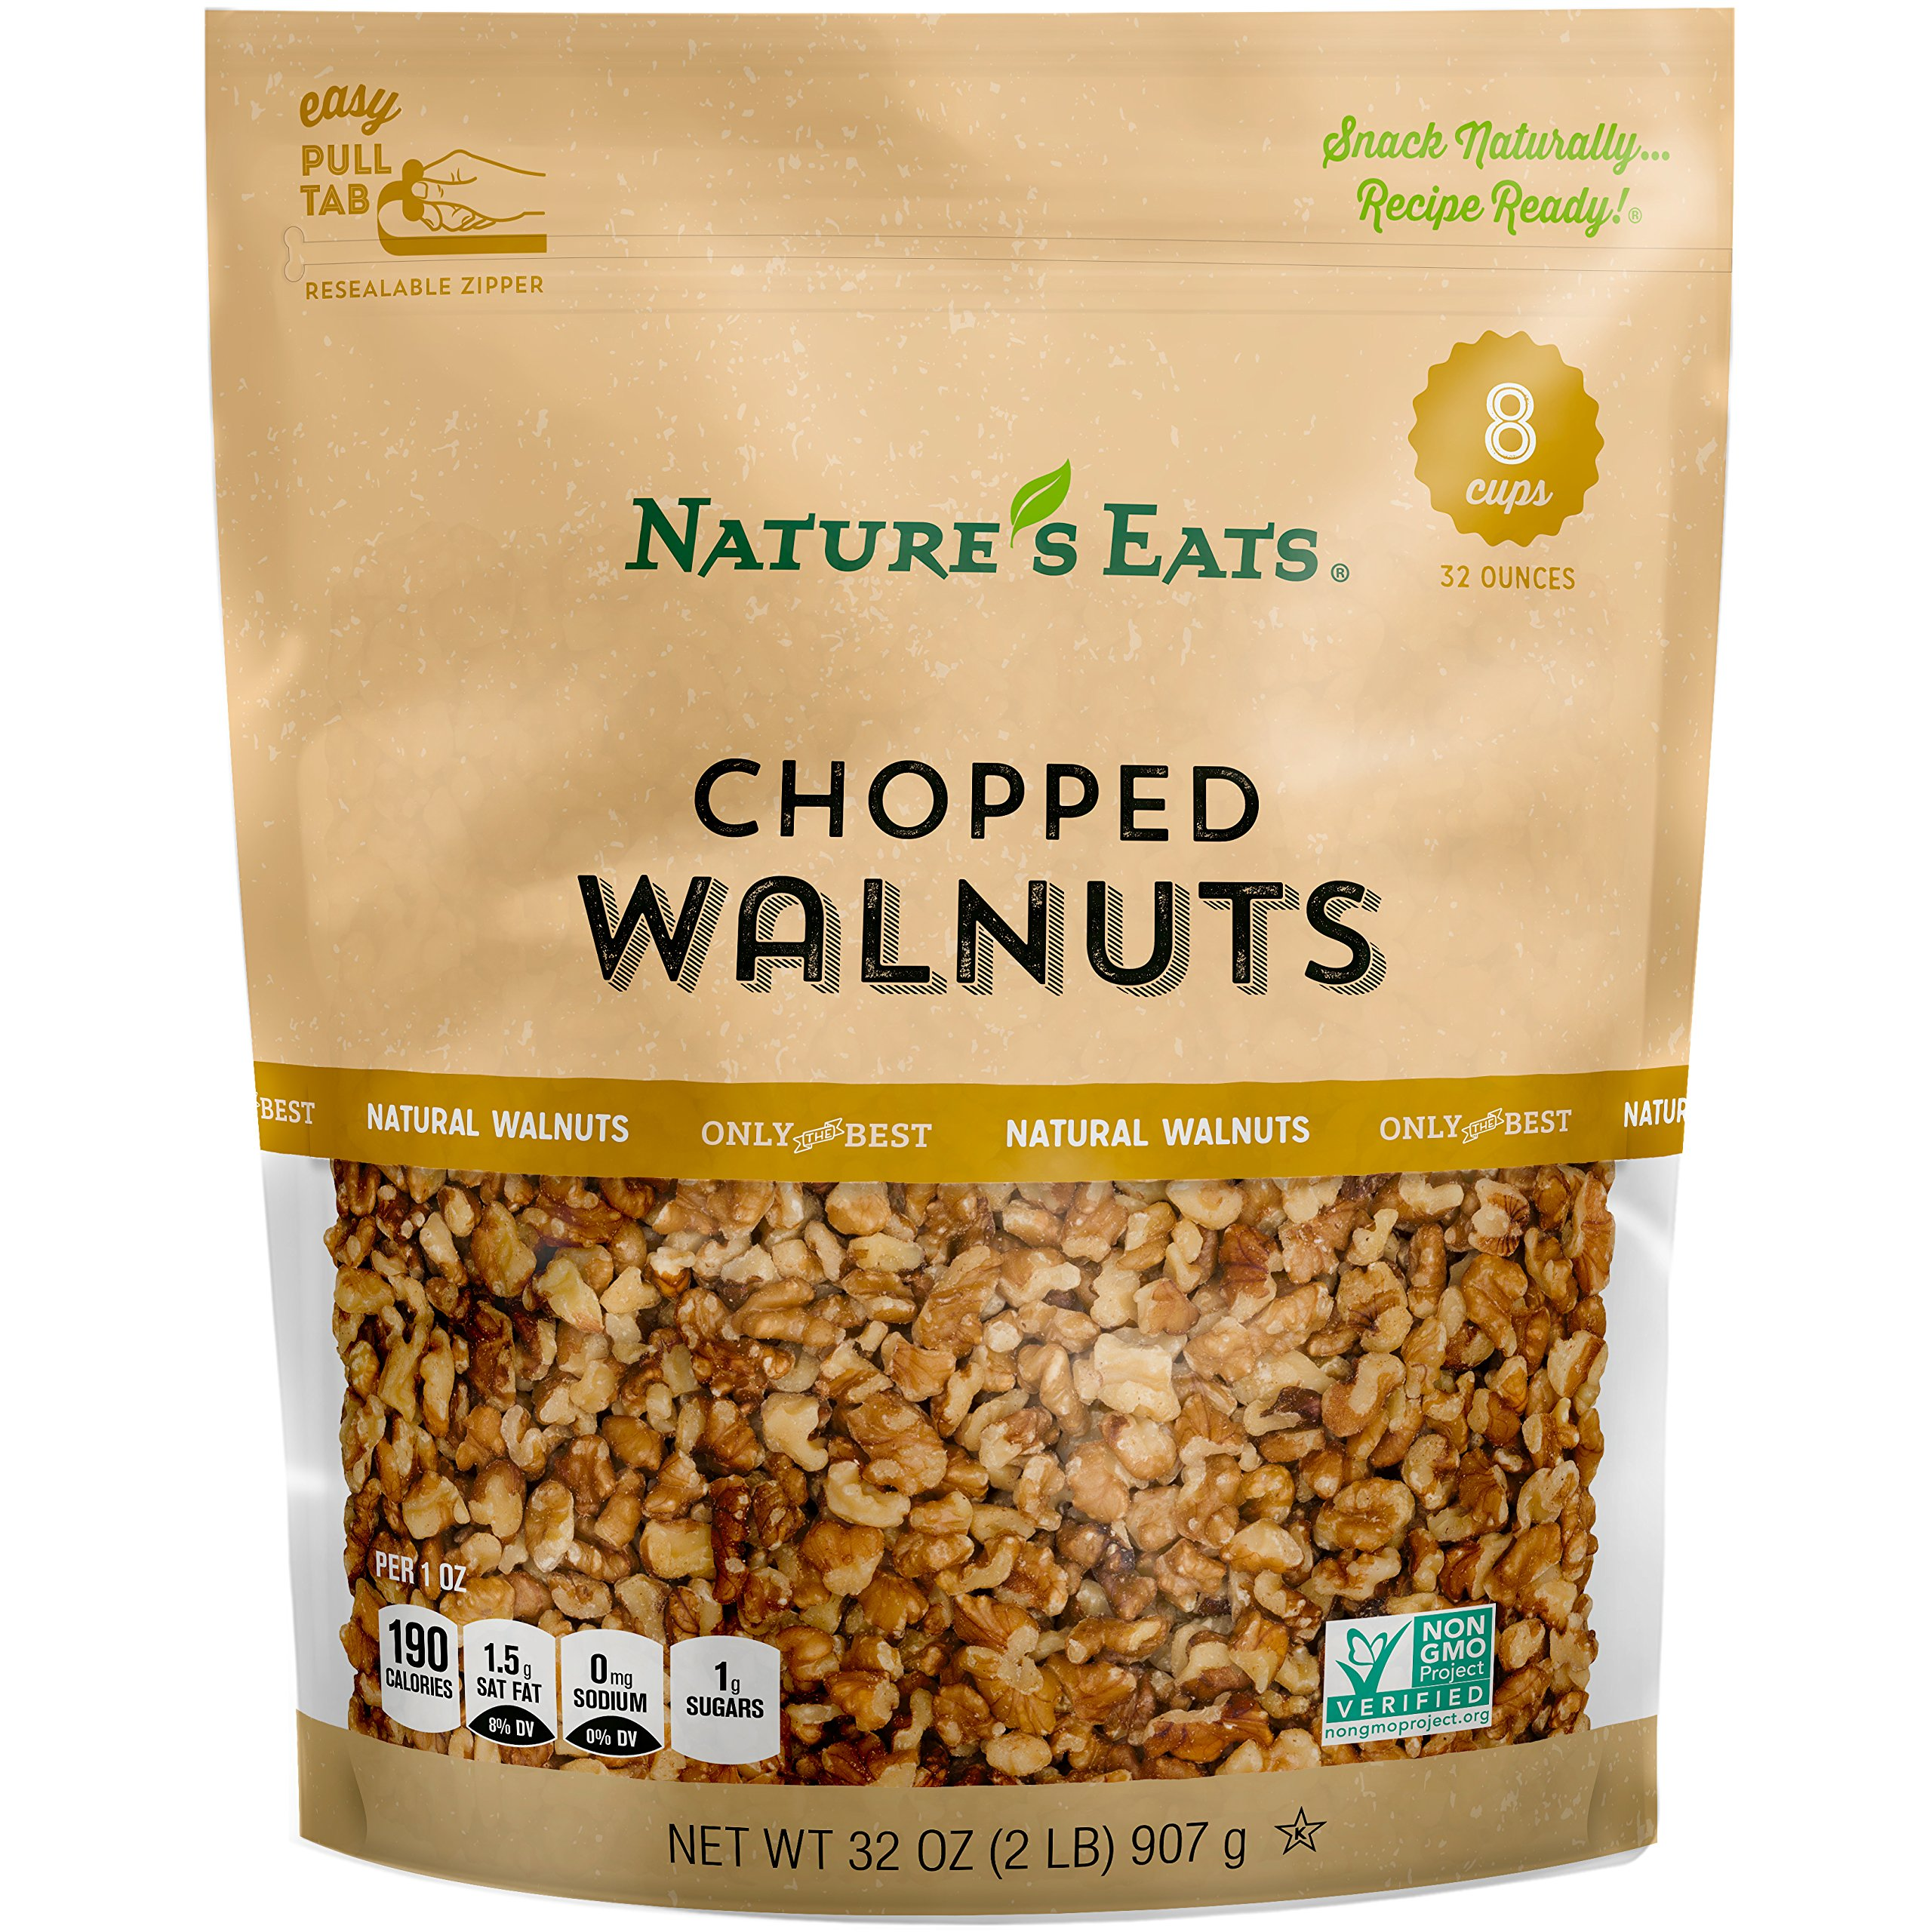 Nature's Eats Chopped Walnuts, 32 Ounce by Nature's Eats